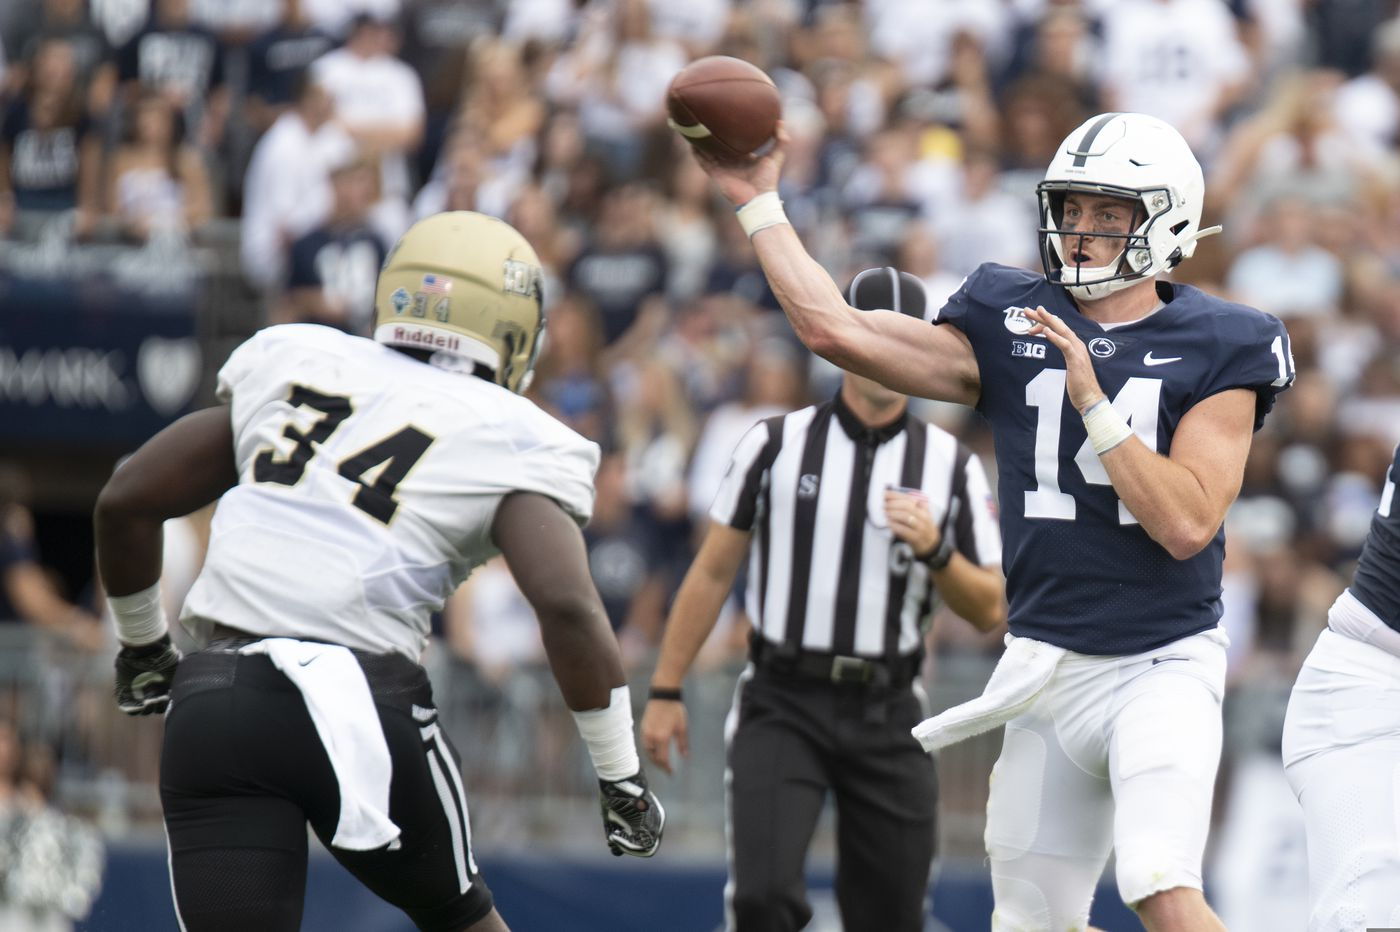 Penn State vs. Buffalo: It won't be as easy as 79-7, but Penn State should go 2-0